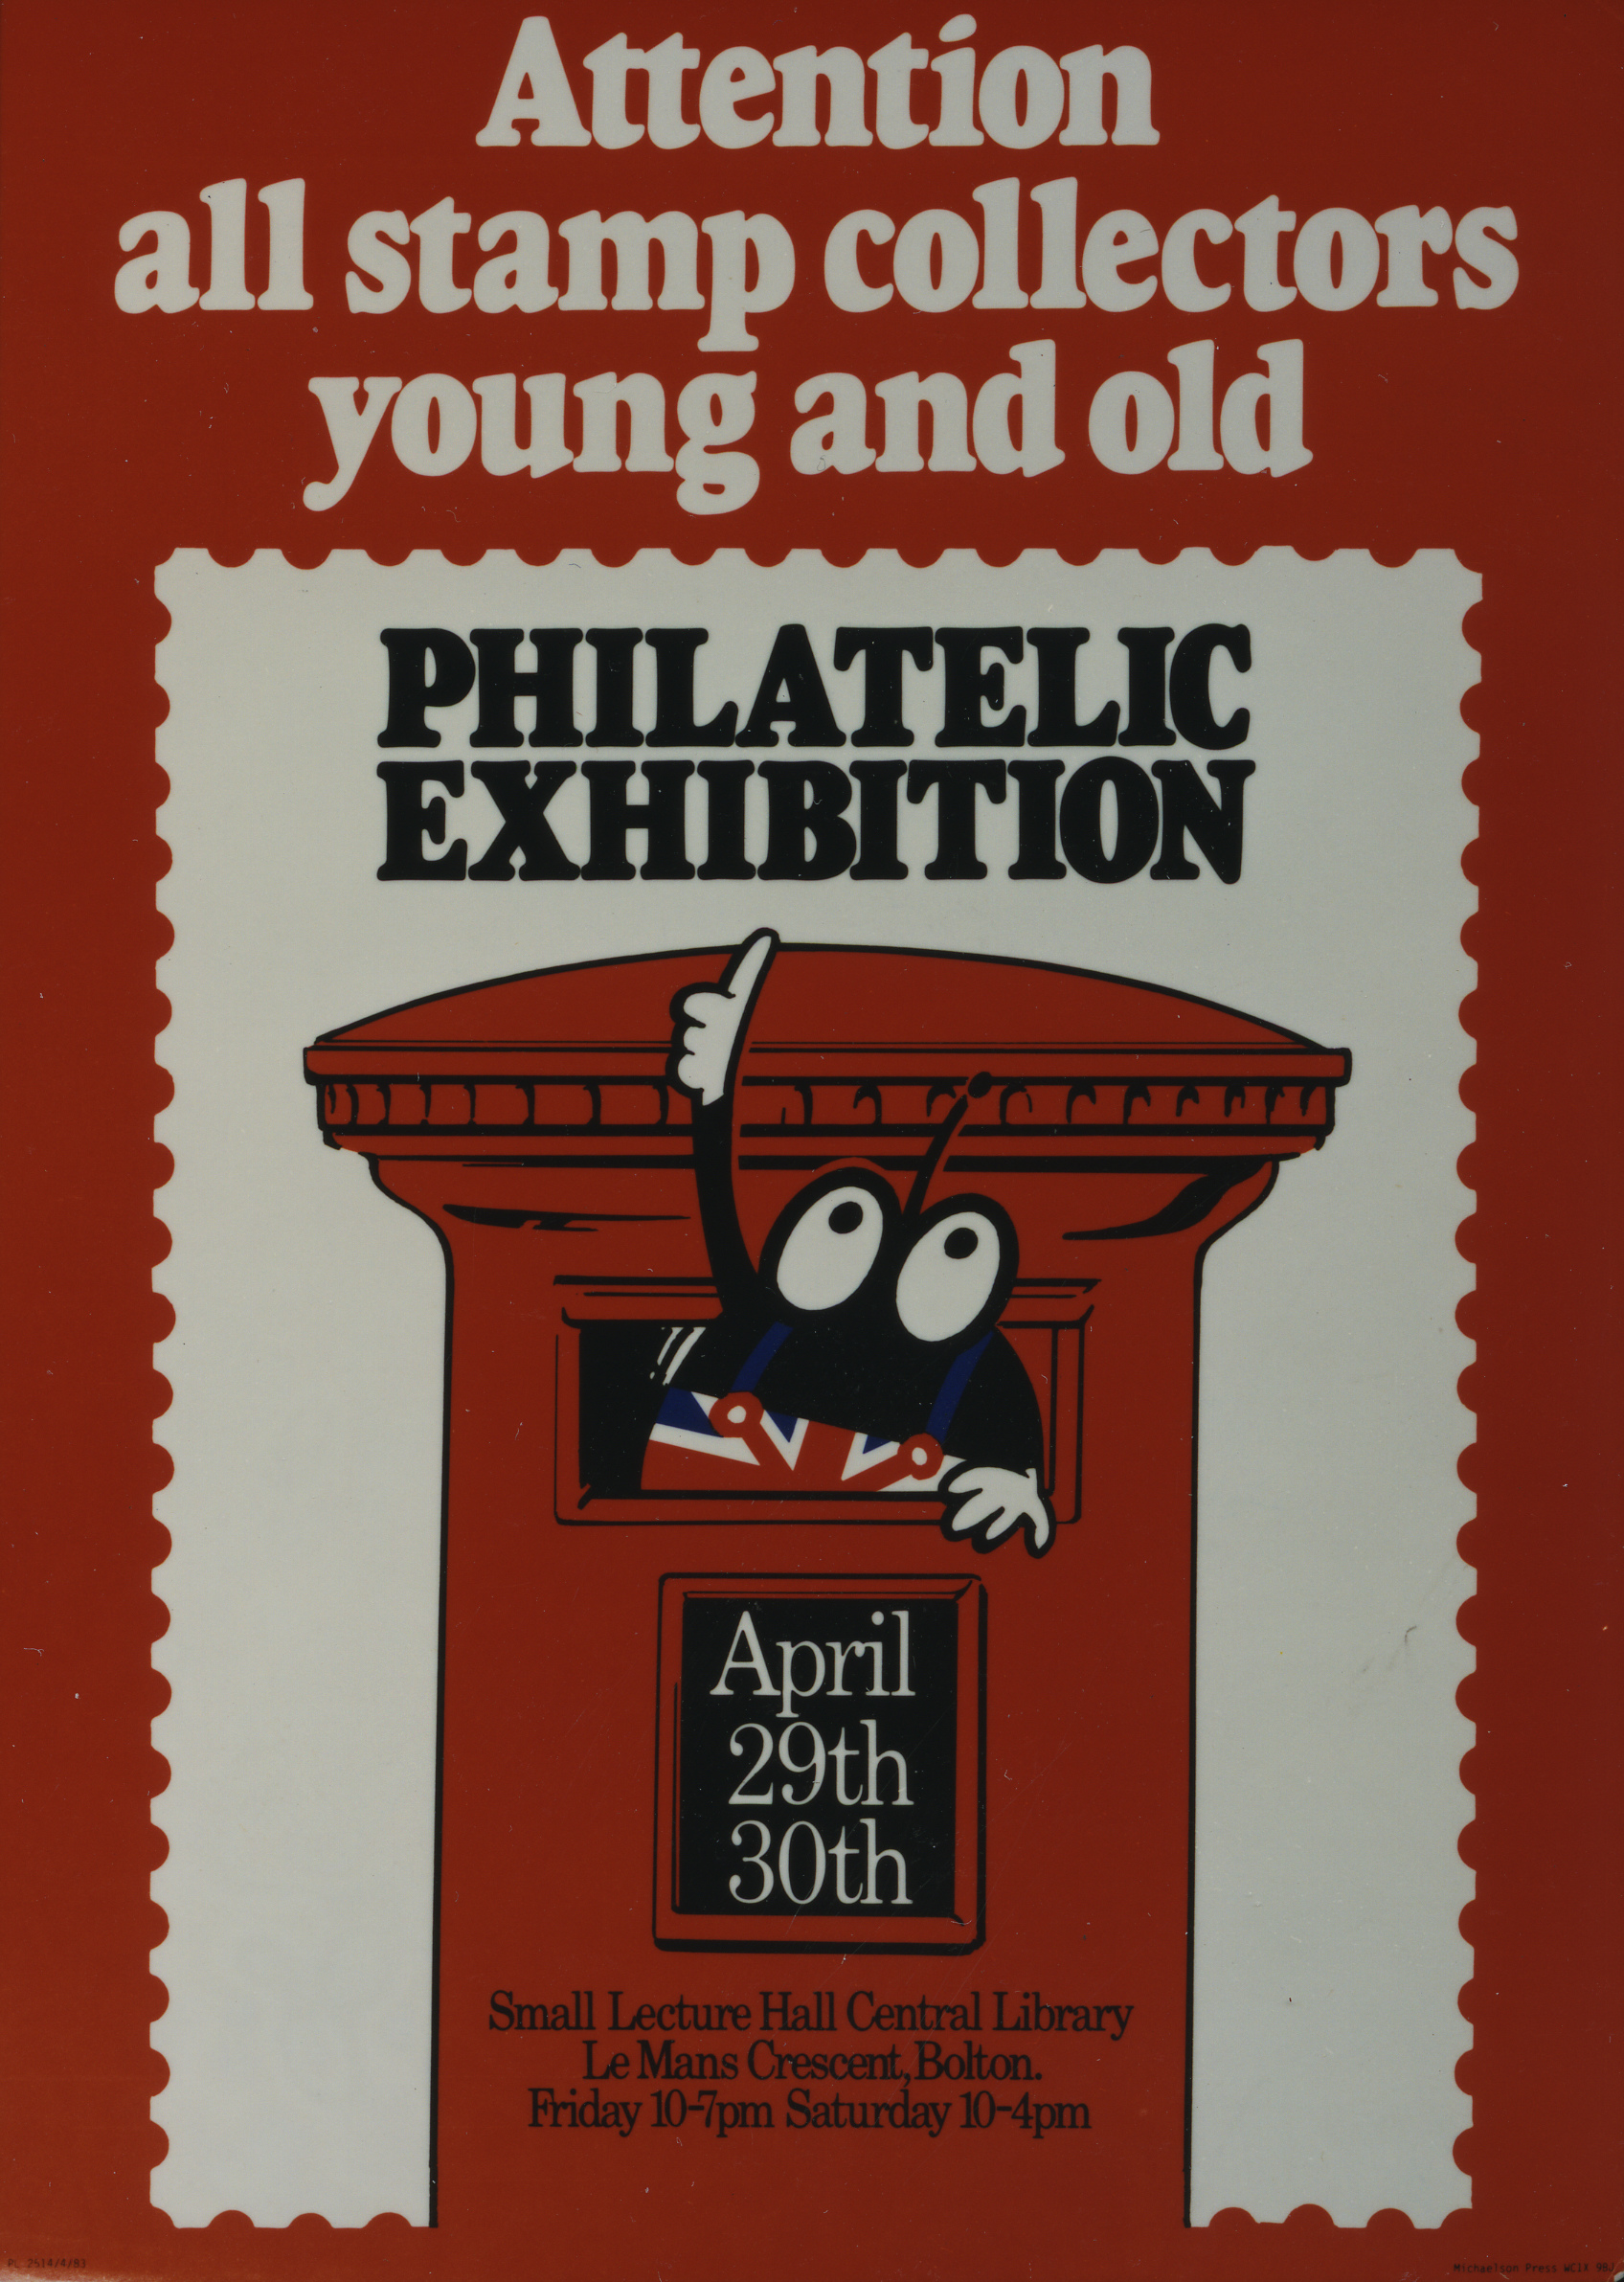 Poster of a bug inside a pillar box pointing at the text 'Philatelic Exhibition'.